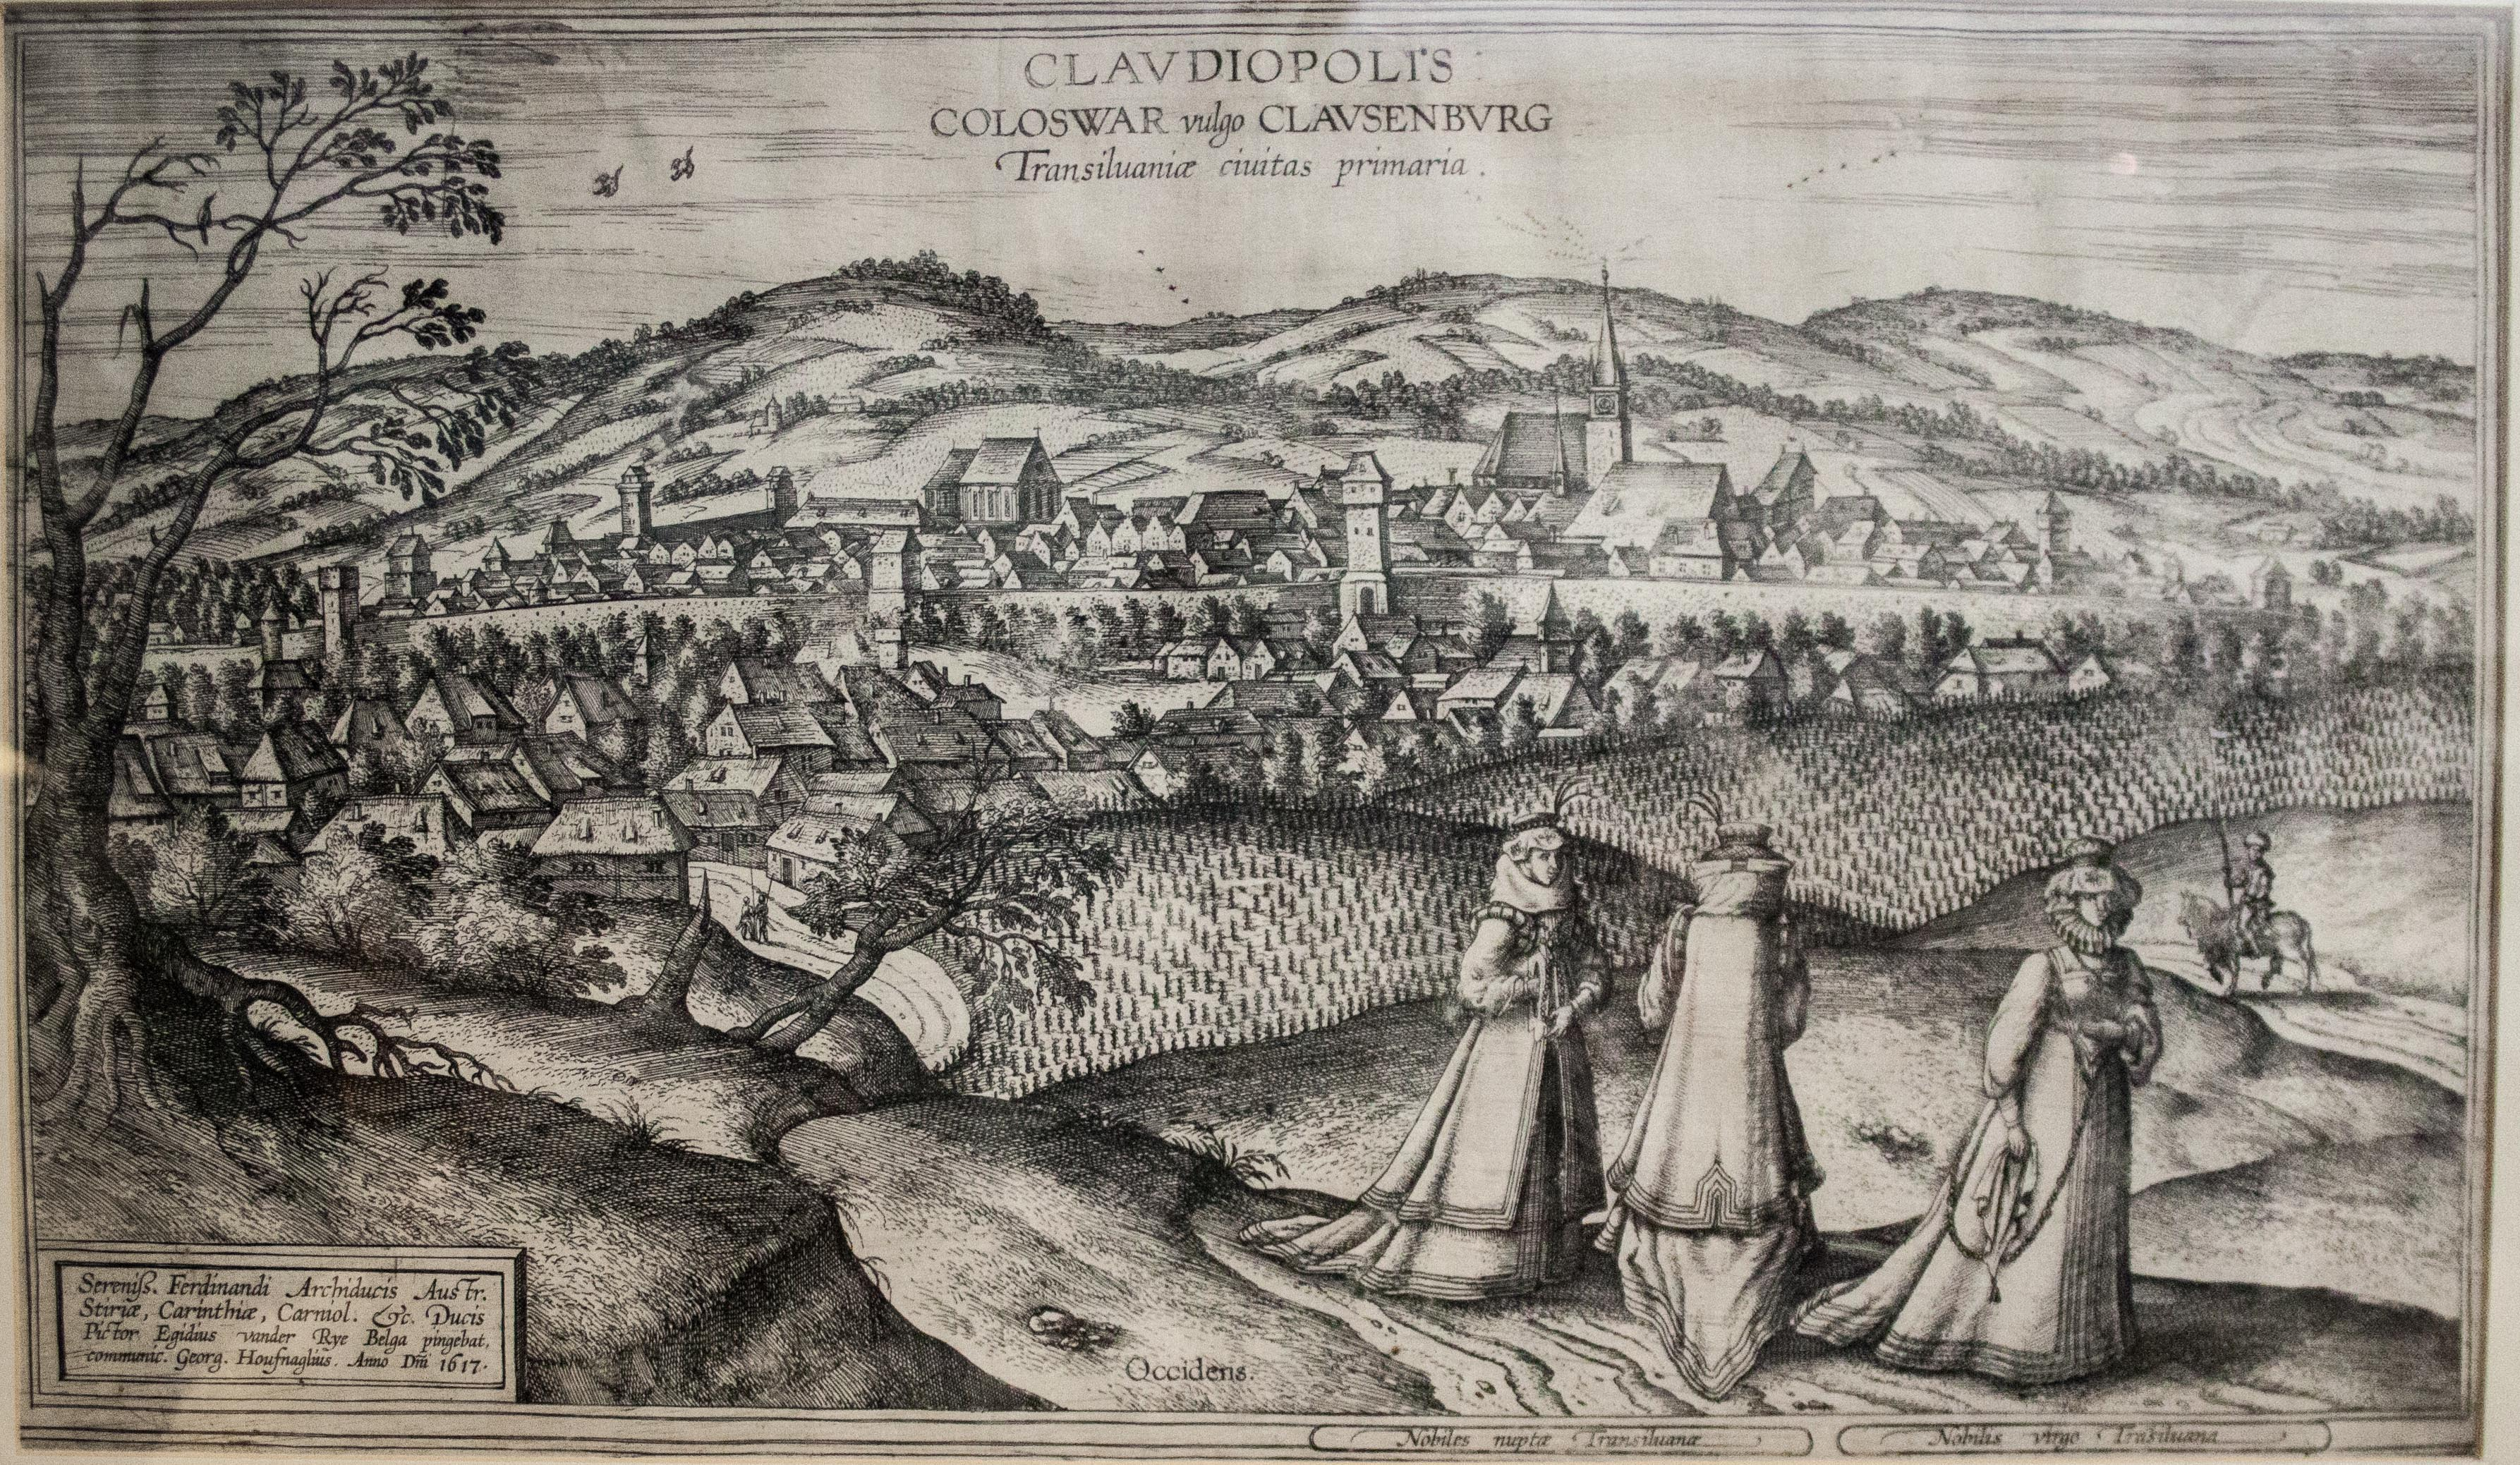 File:Cluj by Joris Hoefnagel, 1617 (black and white version).jpg